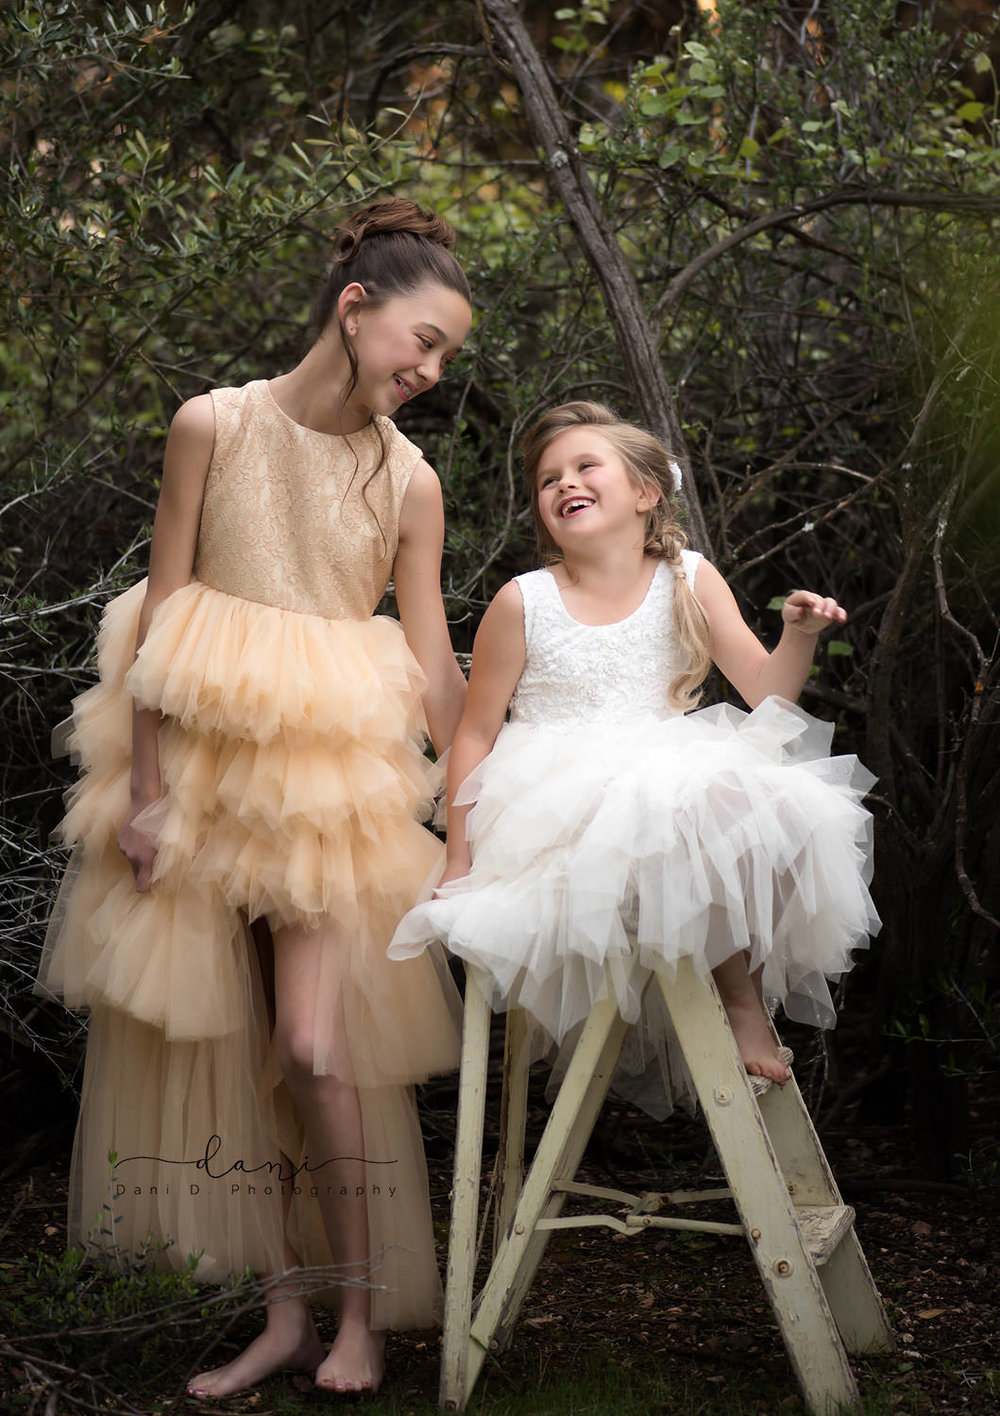 Models Isabella and Katiana Upton - Northern California child and family photographer